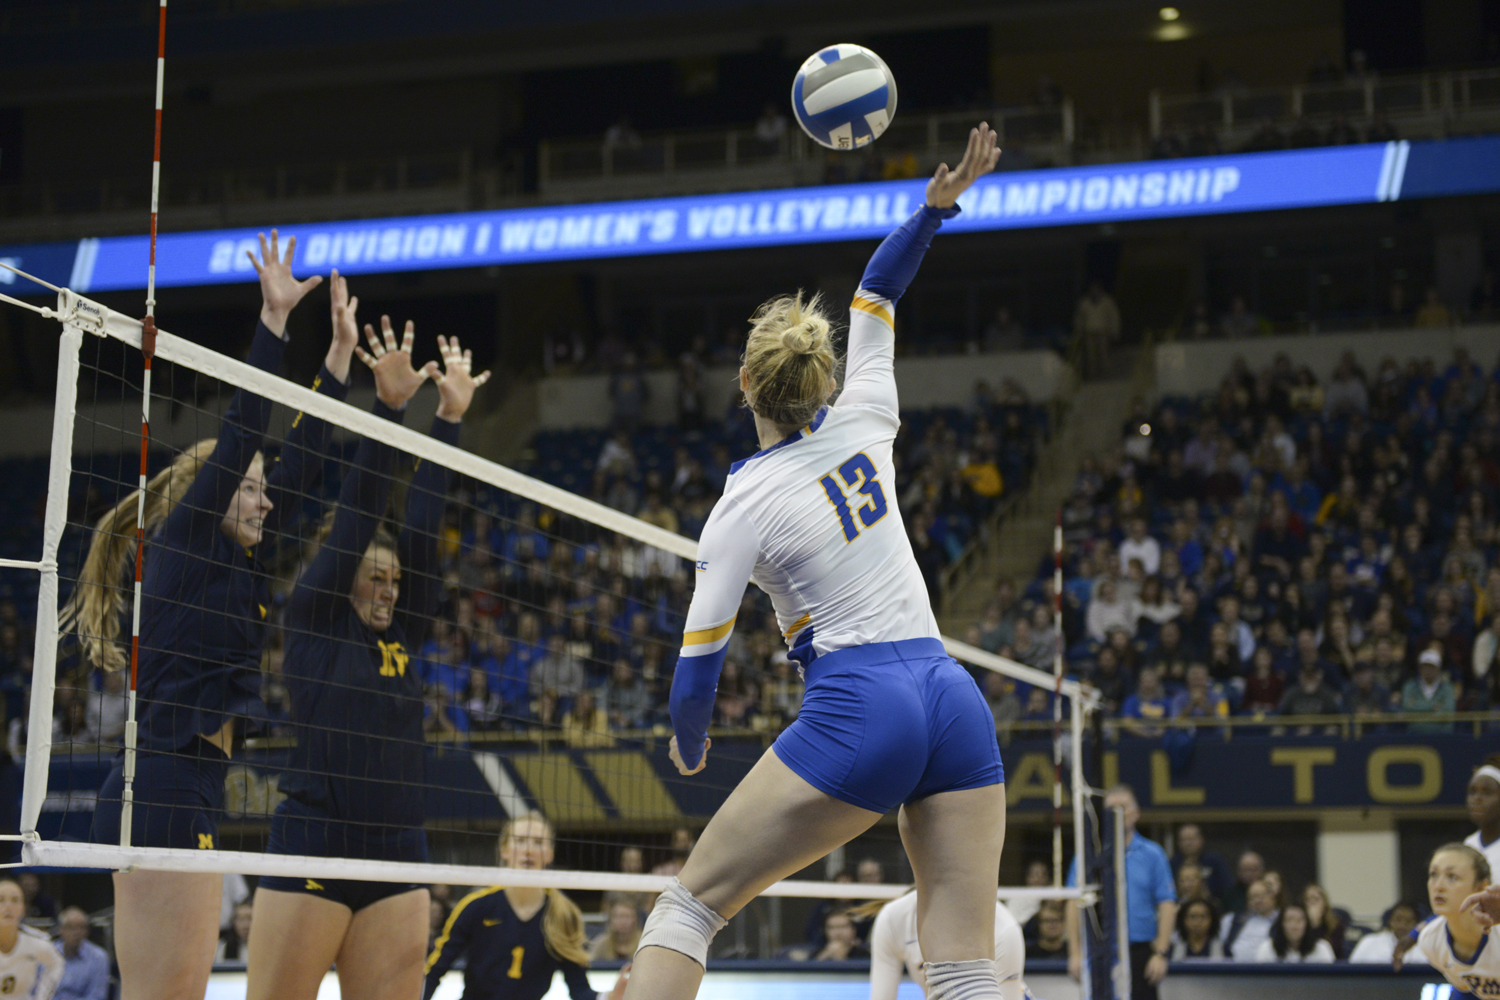 Panthers' volleyball ended the season with a 30-2 record — succumbing to Michigan in the second round of the NCAA Tournament at the Petersen Events Center Saturday night.